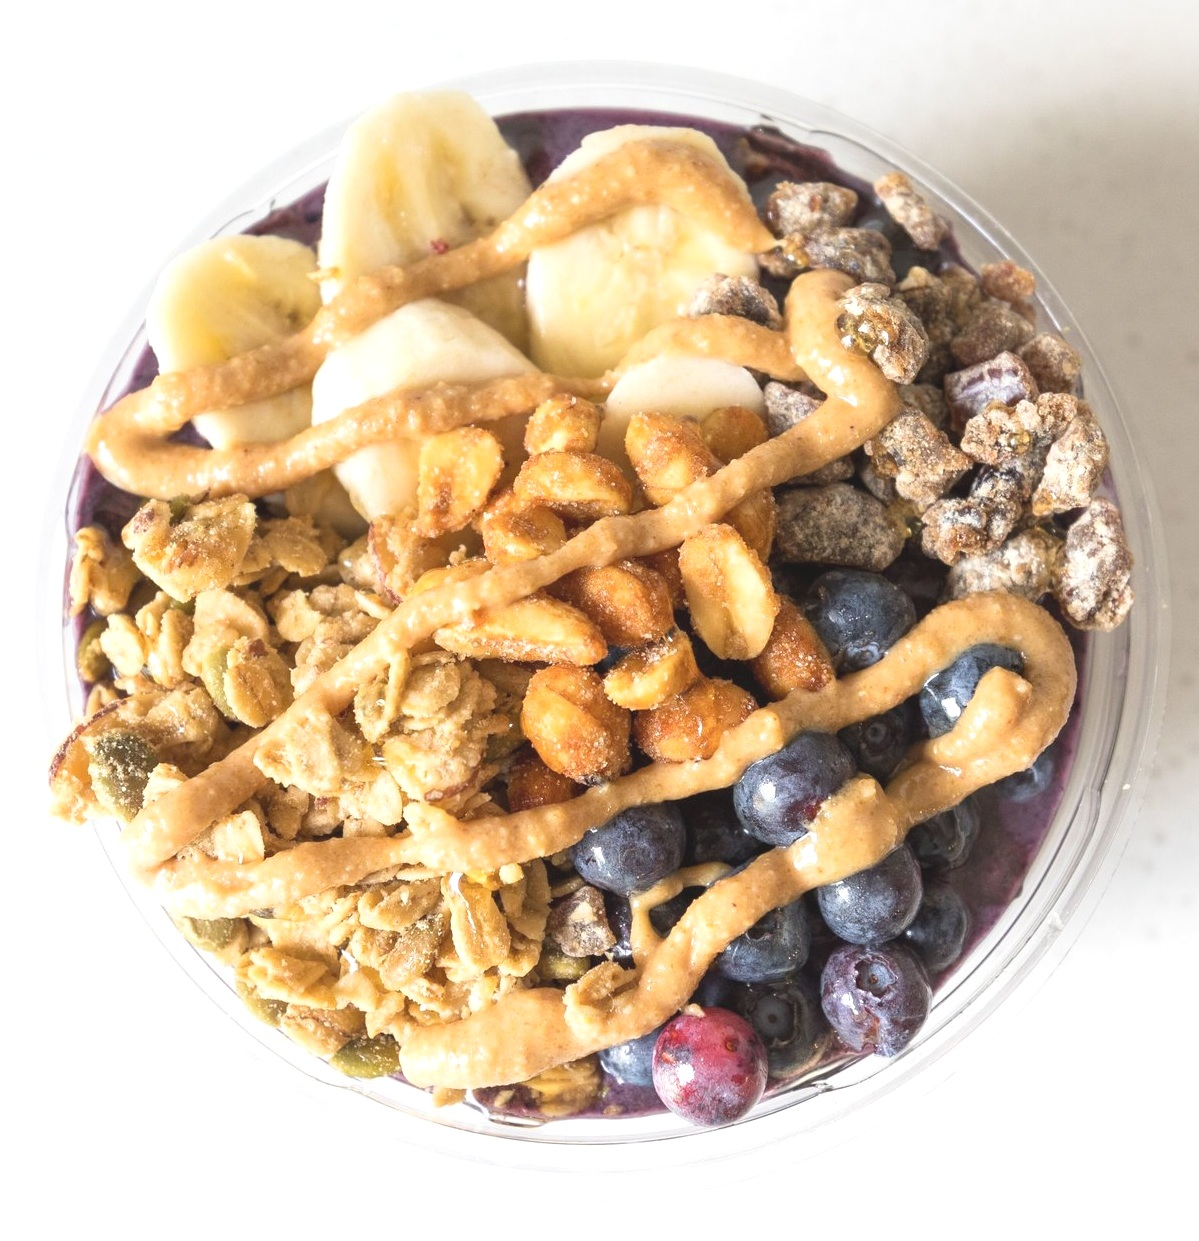 PB + B Bowl:  Acai / Bananas / Blueberry / Peanut Butter / Dates / Almond Milk  Topped With Banana, Blueberry, Honey Roasted Peanut Butter Drizzle, Granola, Chopped Dates